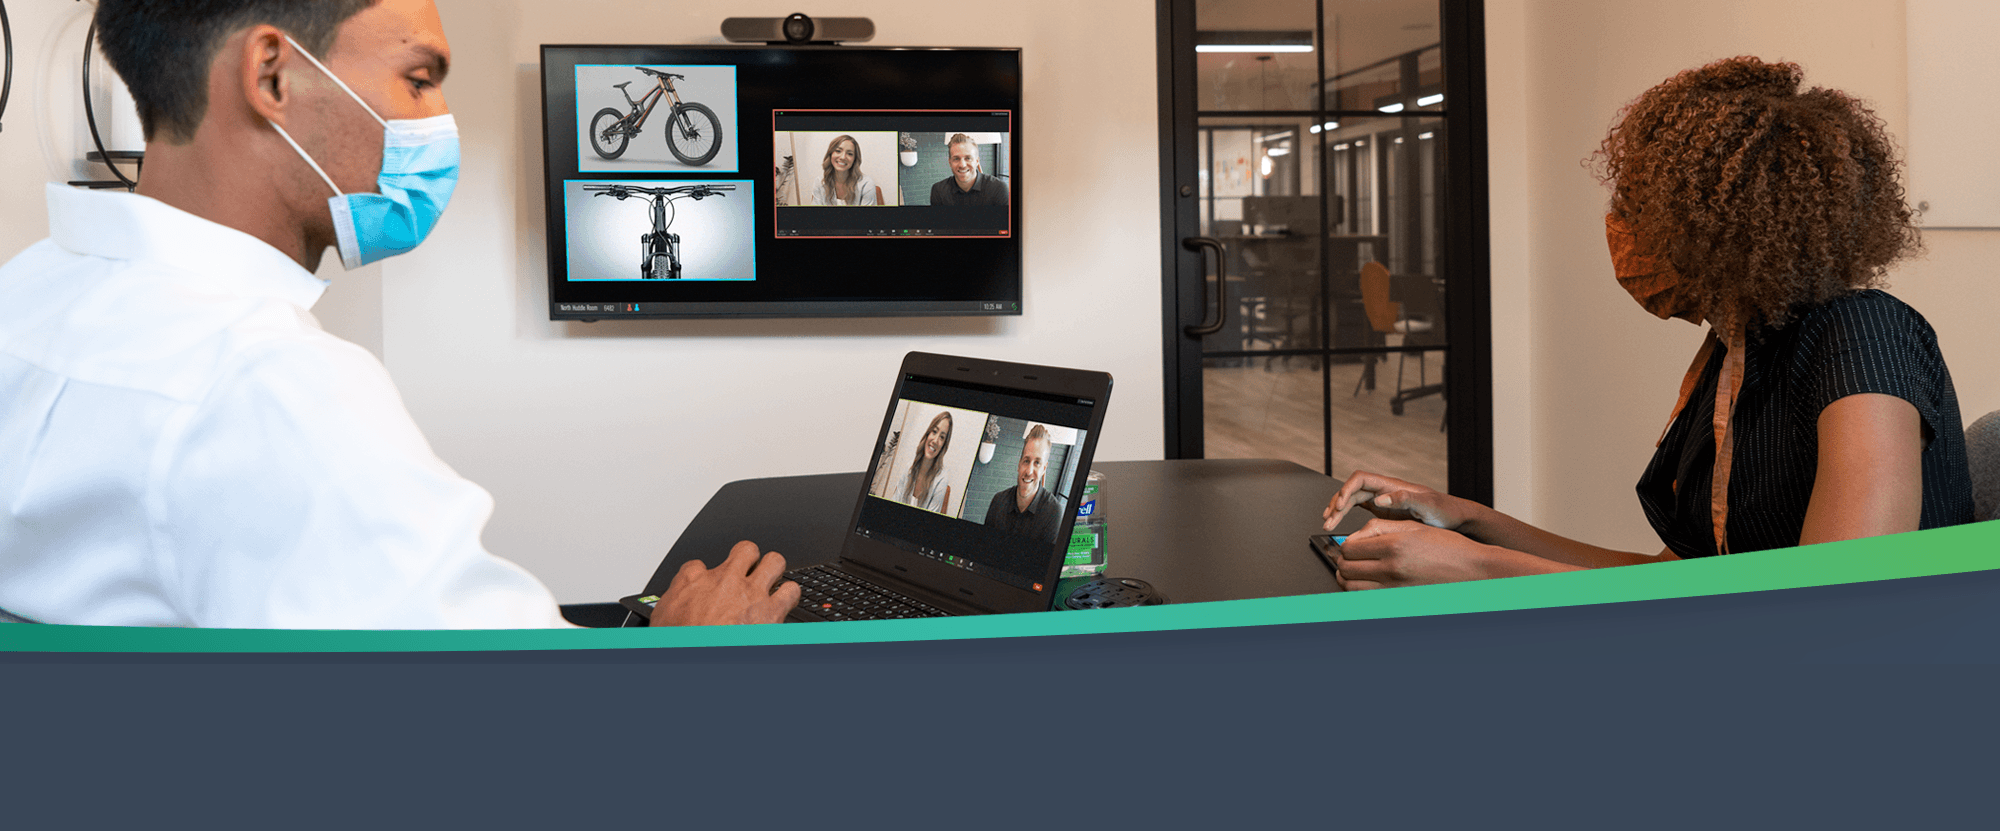 Better Workplace Conferencing with Mersive Cloud Conferencing